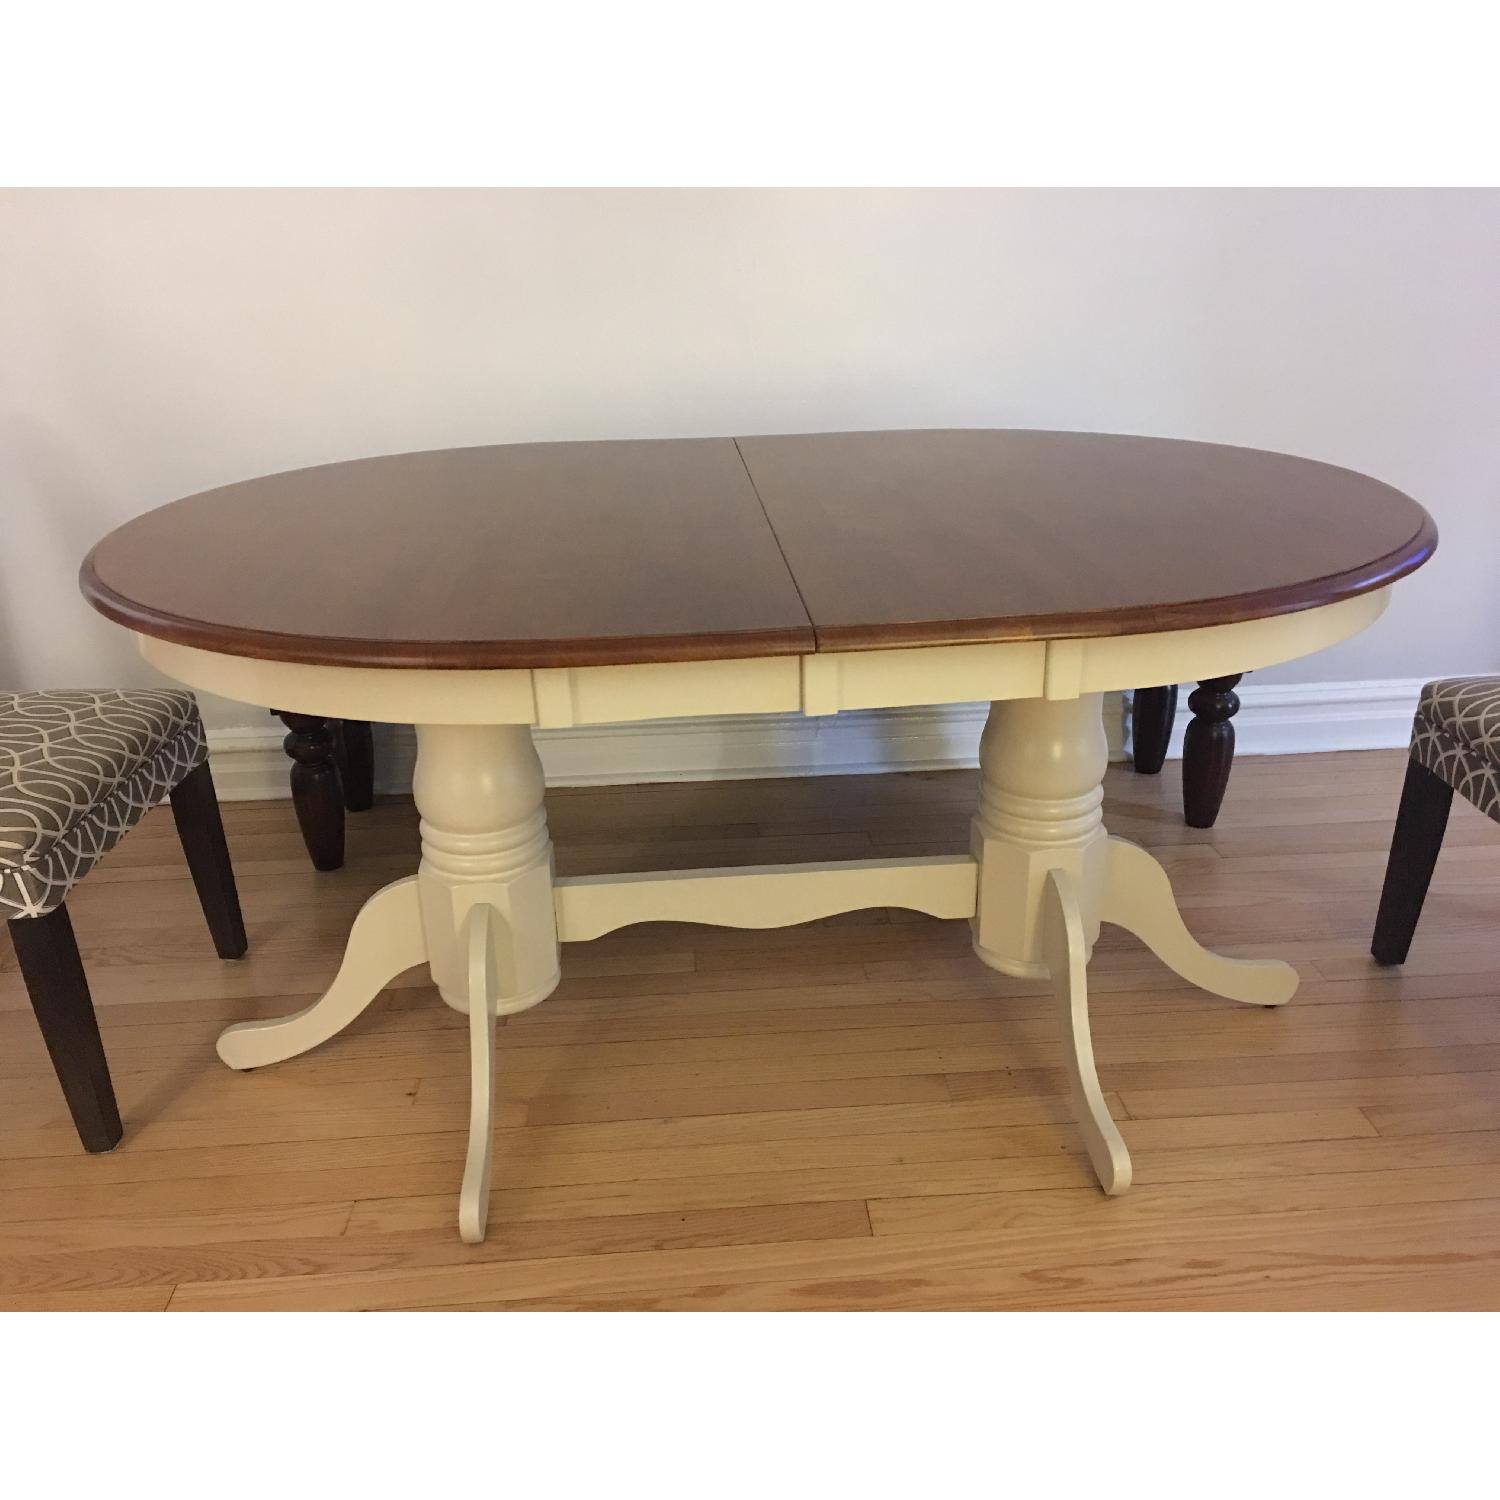 French Dining Table in Antique White/Chestnut - image-3